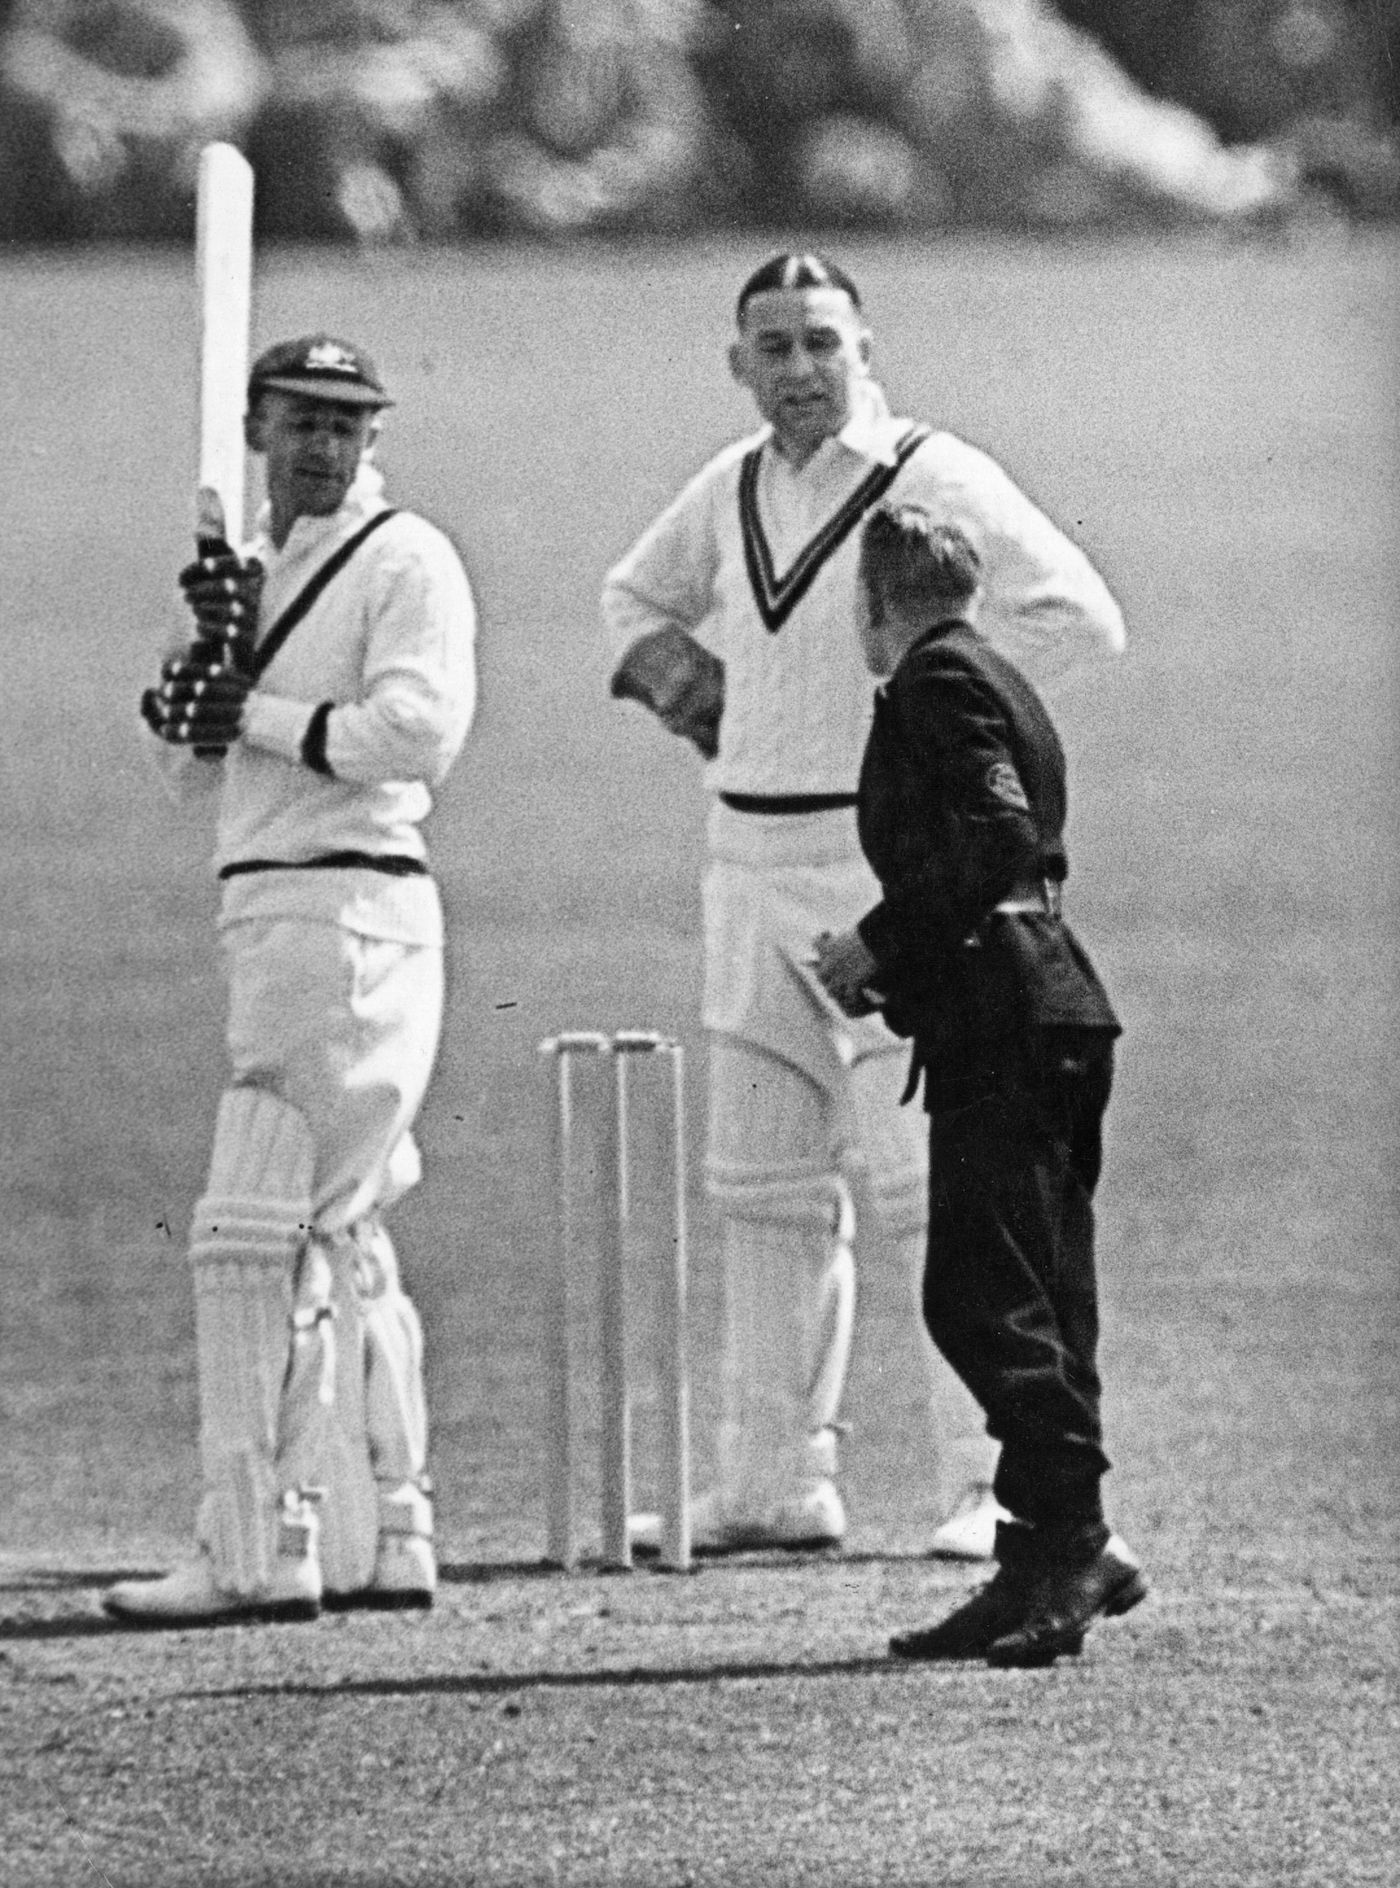 Wicketkeeper Syd Buller takes a message while Bradman looks on bemusedly during a tour match in 1938